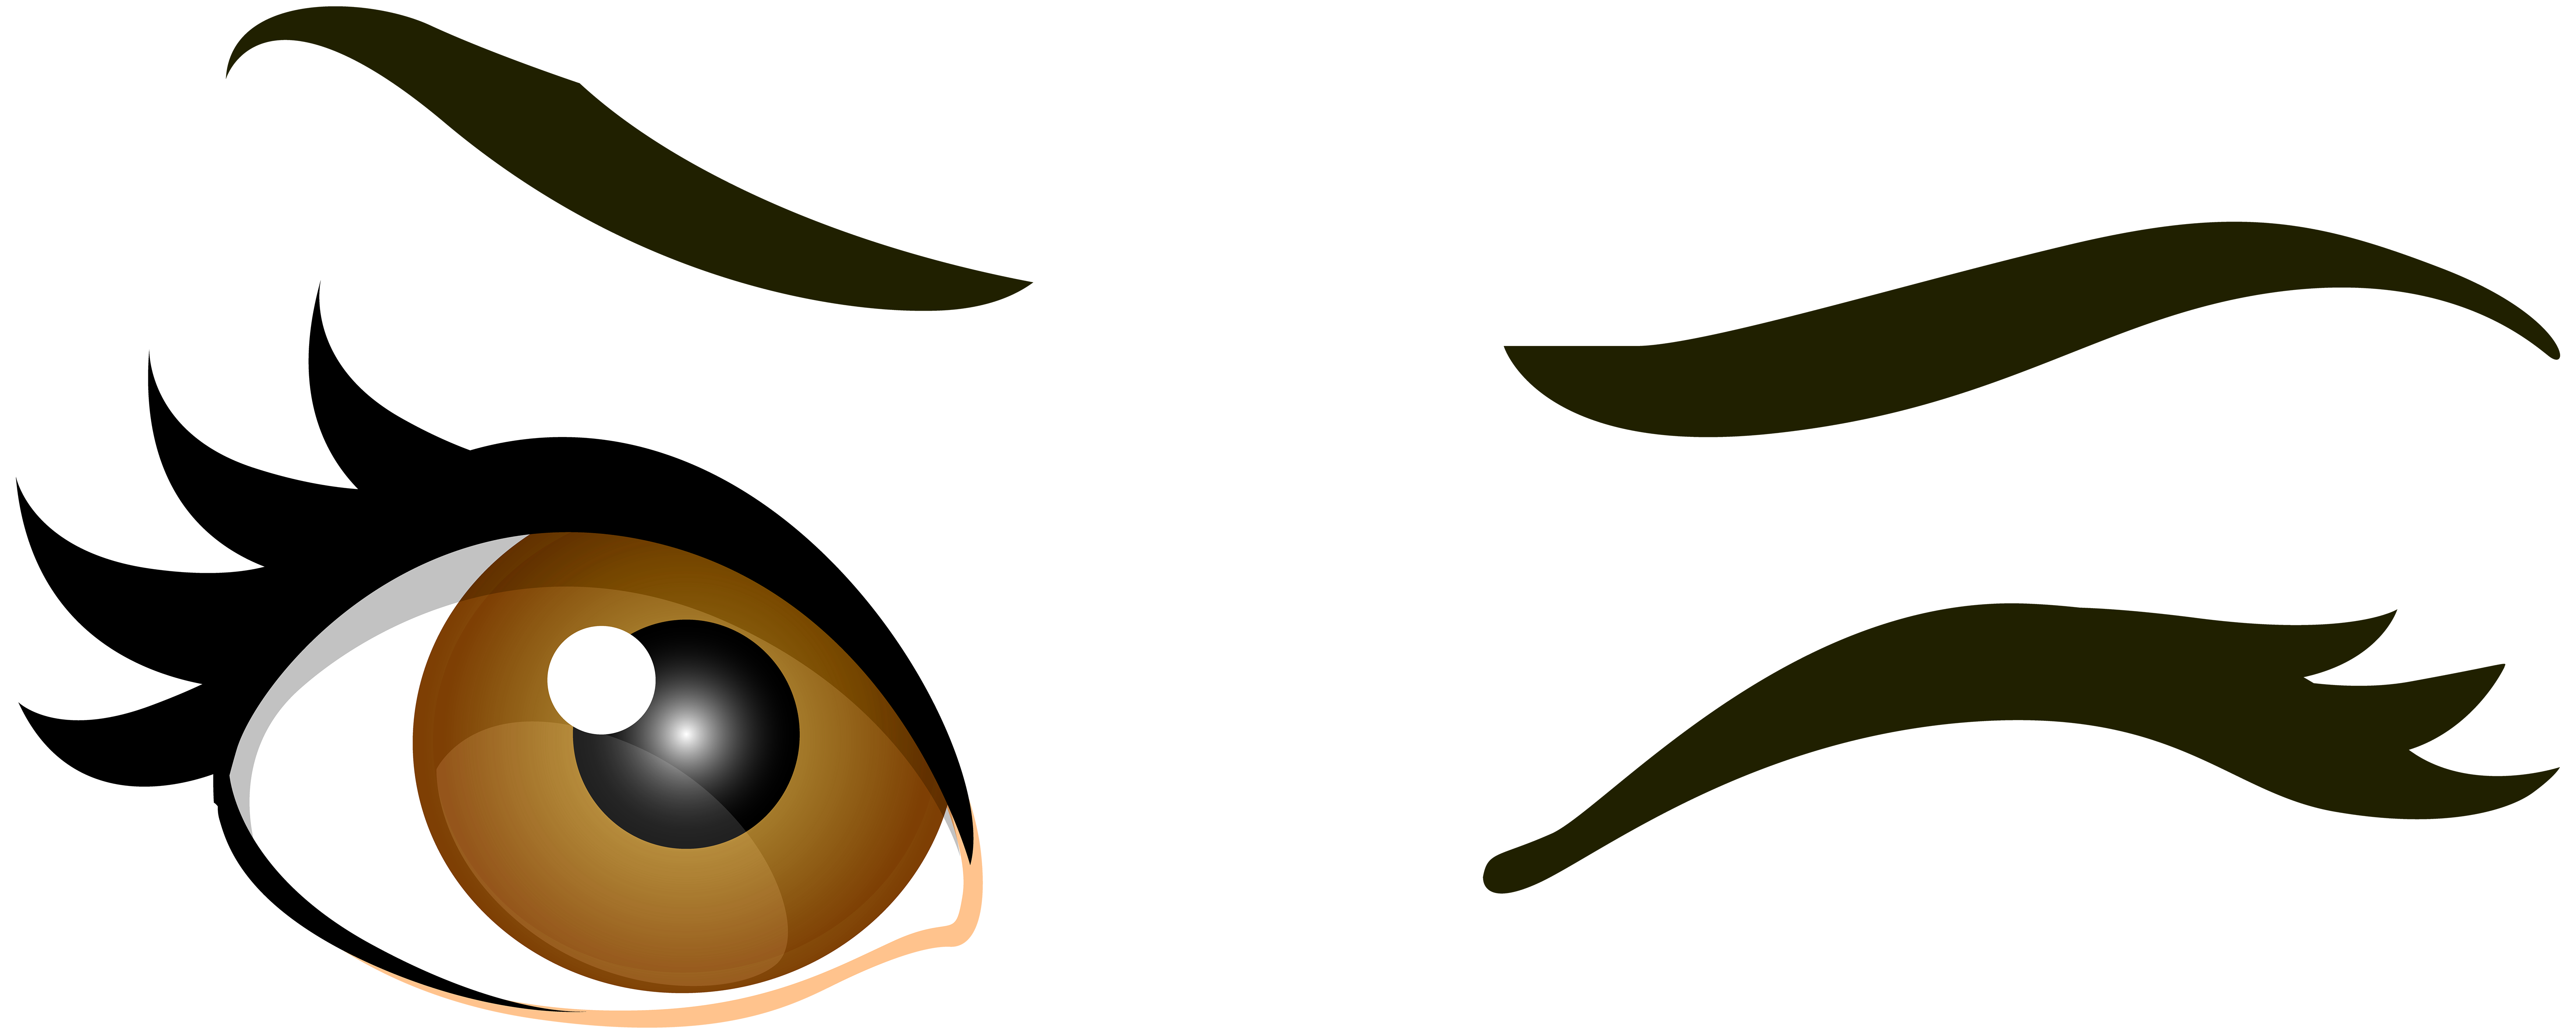 Cool sun blinking eye clipart picture freeuse library Brown Winking Eyes PNG Clip Art - Best WEB Clipart picture freeuse library